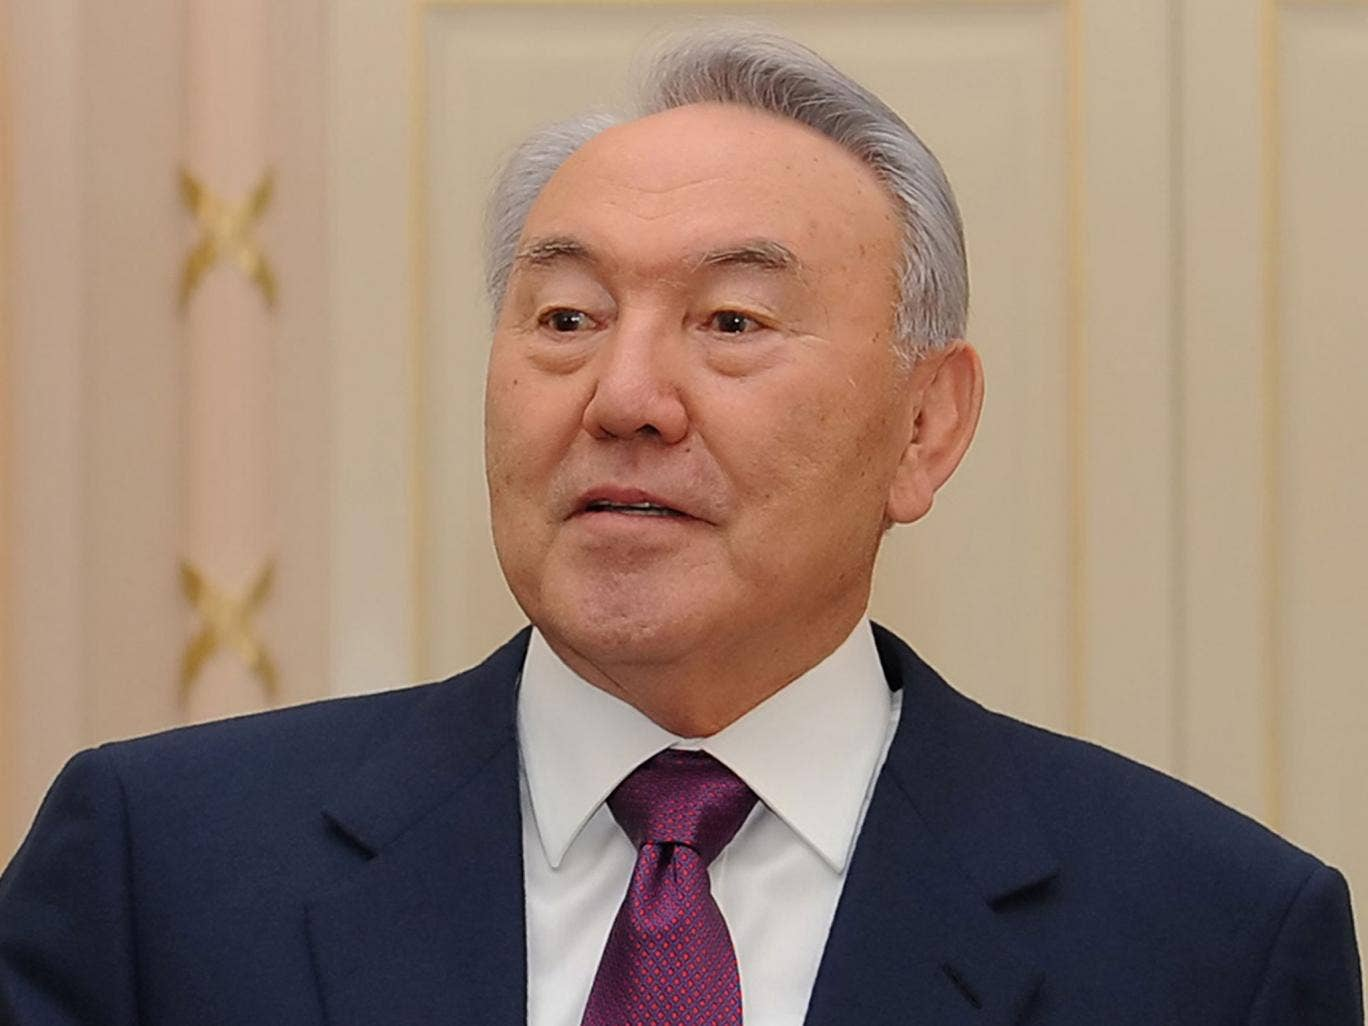 Nursultan Nazarbayev, aged 72, has been President of Kazakhstan since the break-up of the USSR in 1991